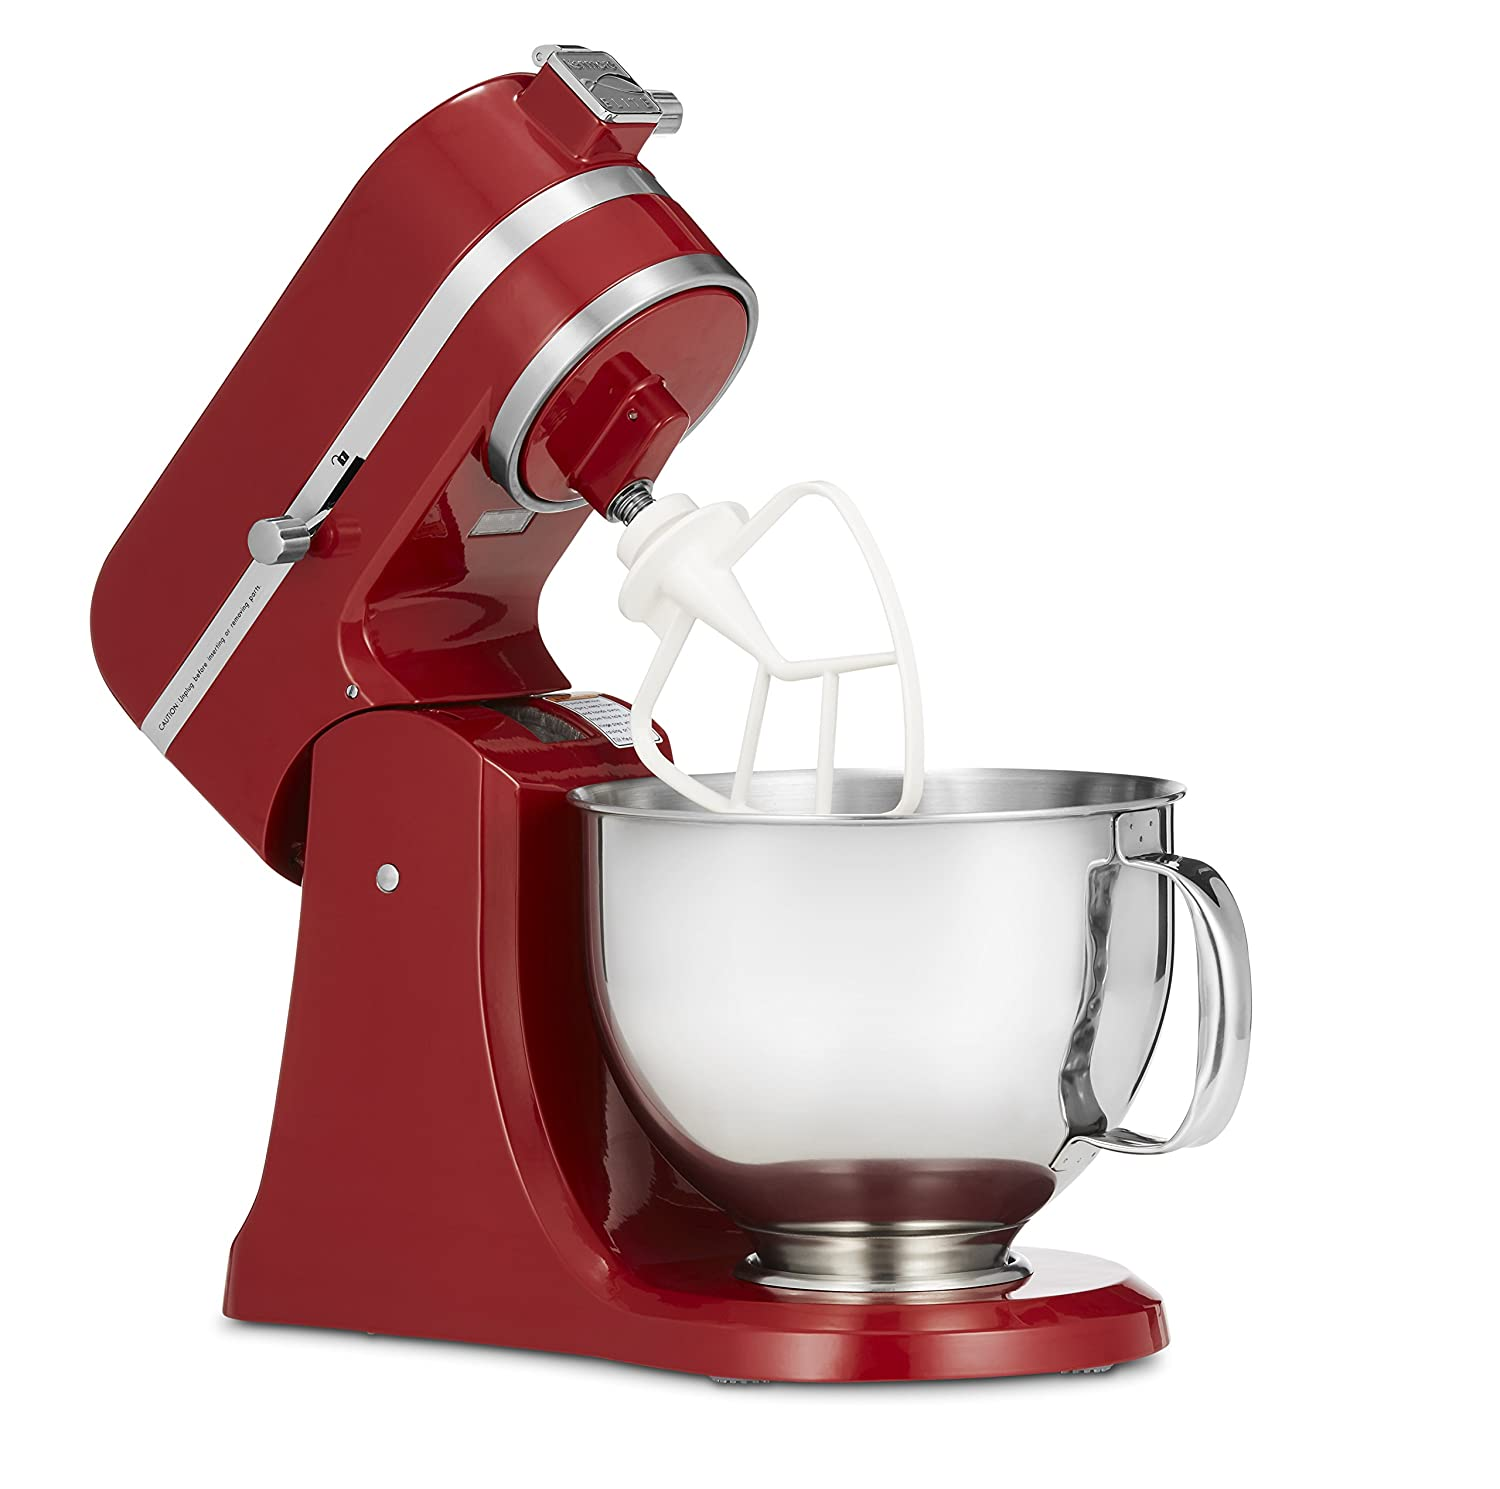 Kenmore Elite 89208 5 Quart Stand Mixer in Red Kitchen & Dining ...